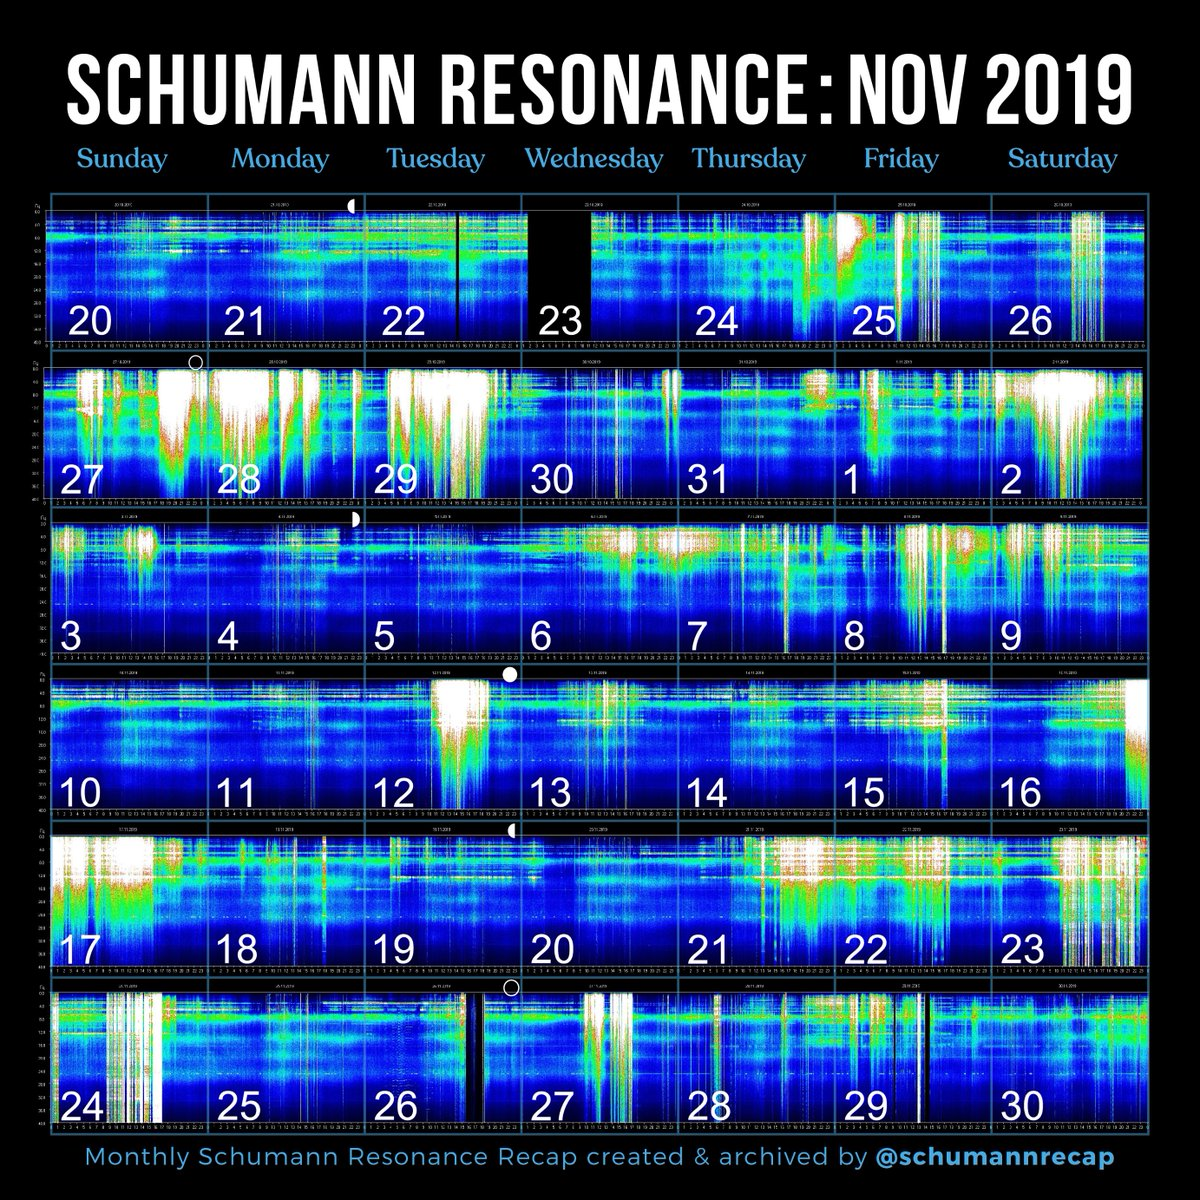 November 2019 Schumann Resonance Recap   IG: http://instagram.com/schumannrecap  #schumannresonance #november2019 pic.twitter.com/tACIHjuAs7